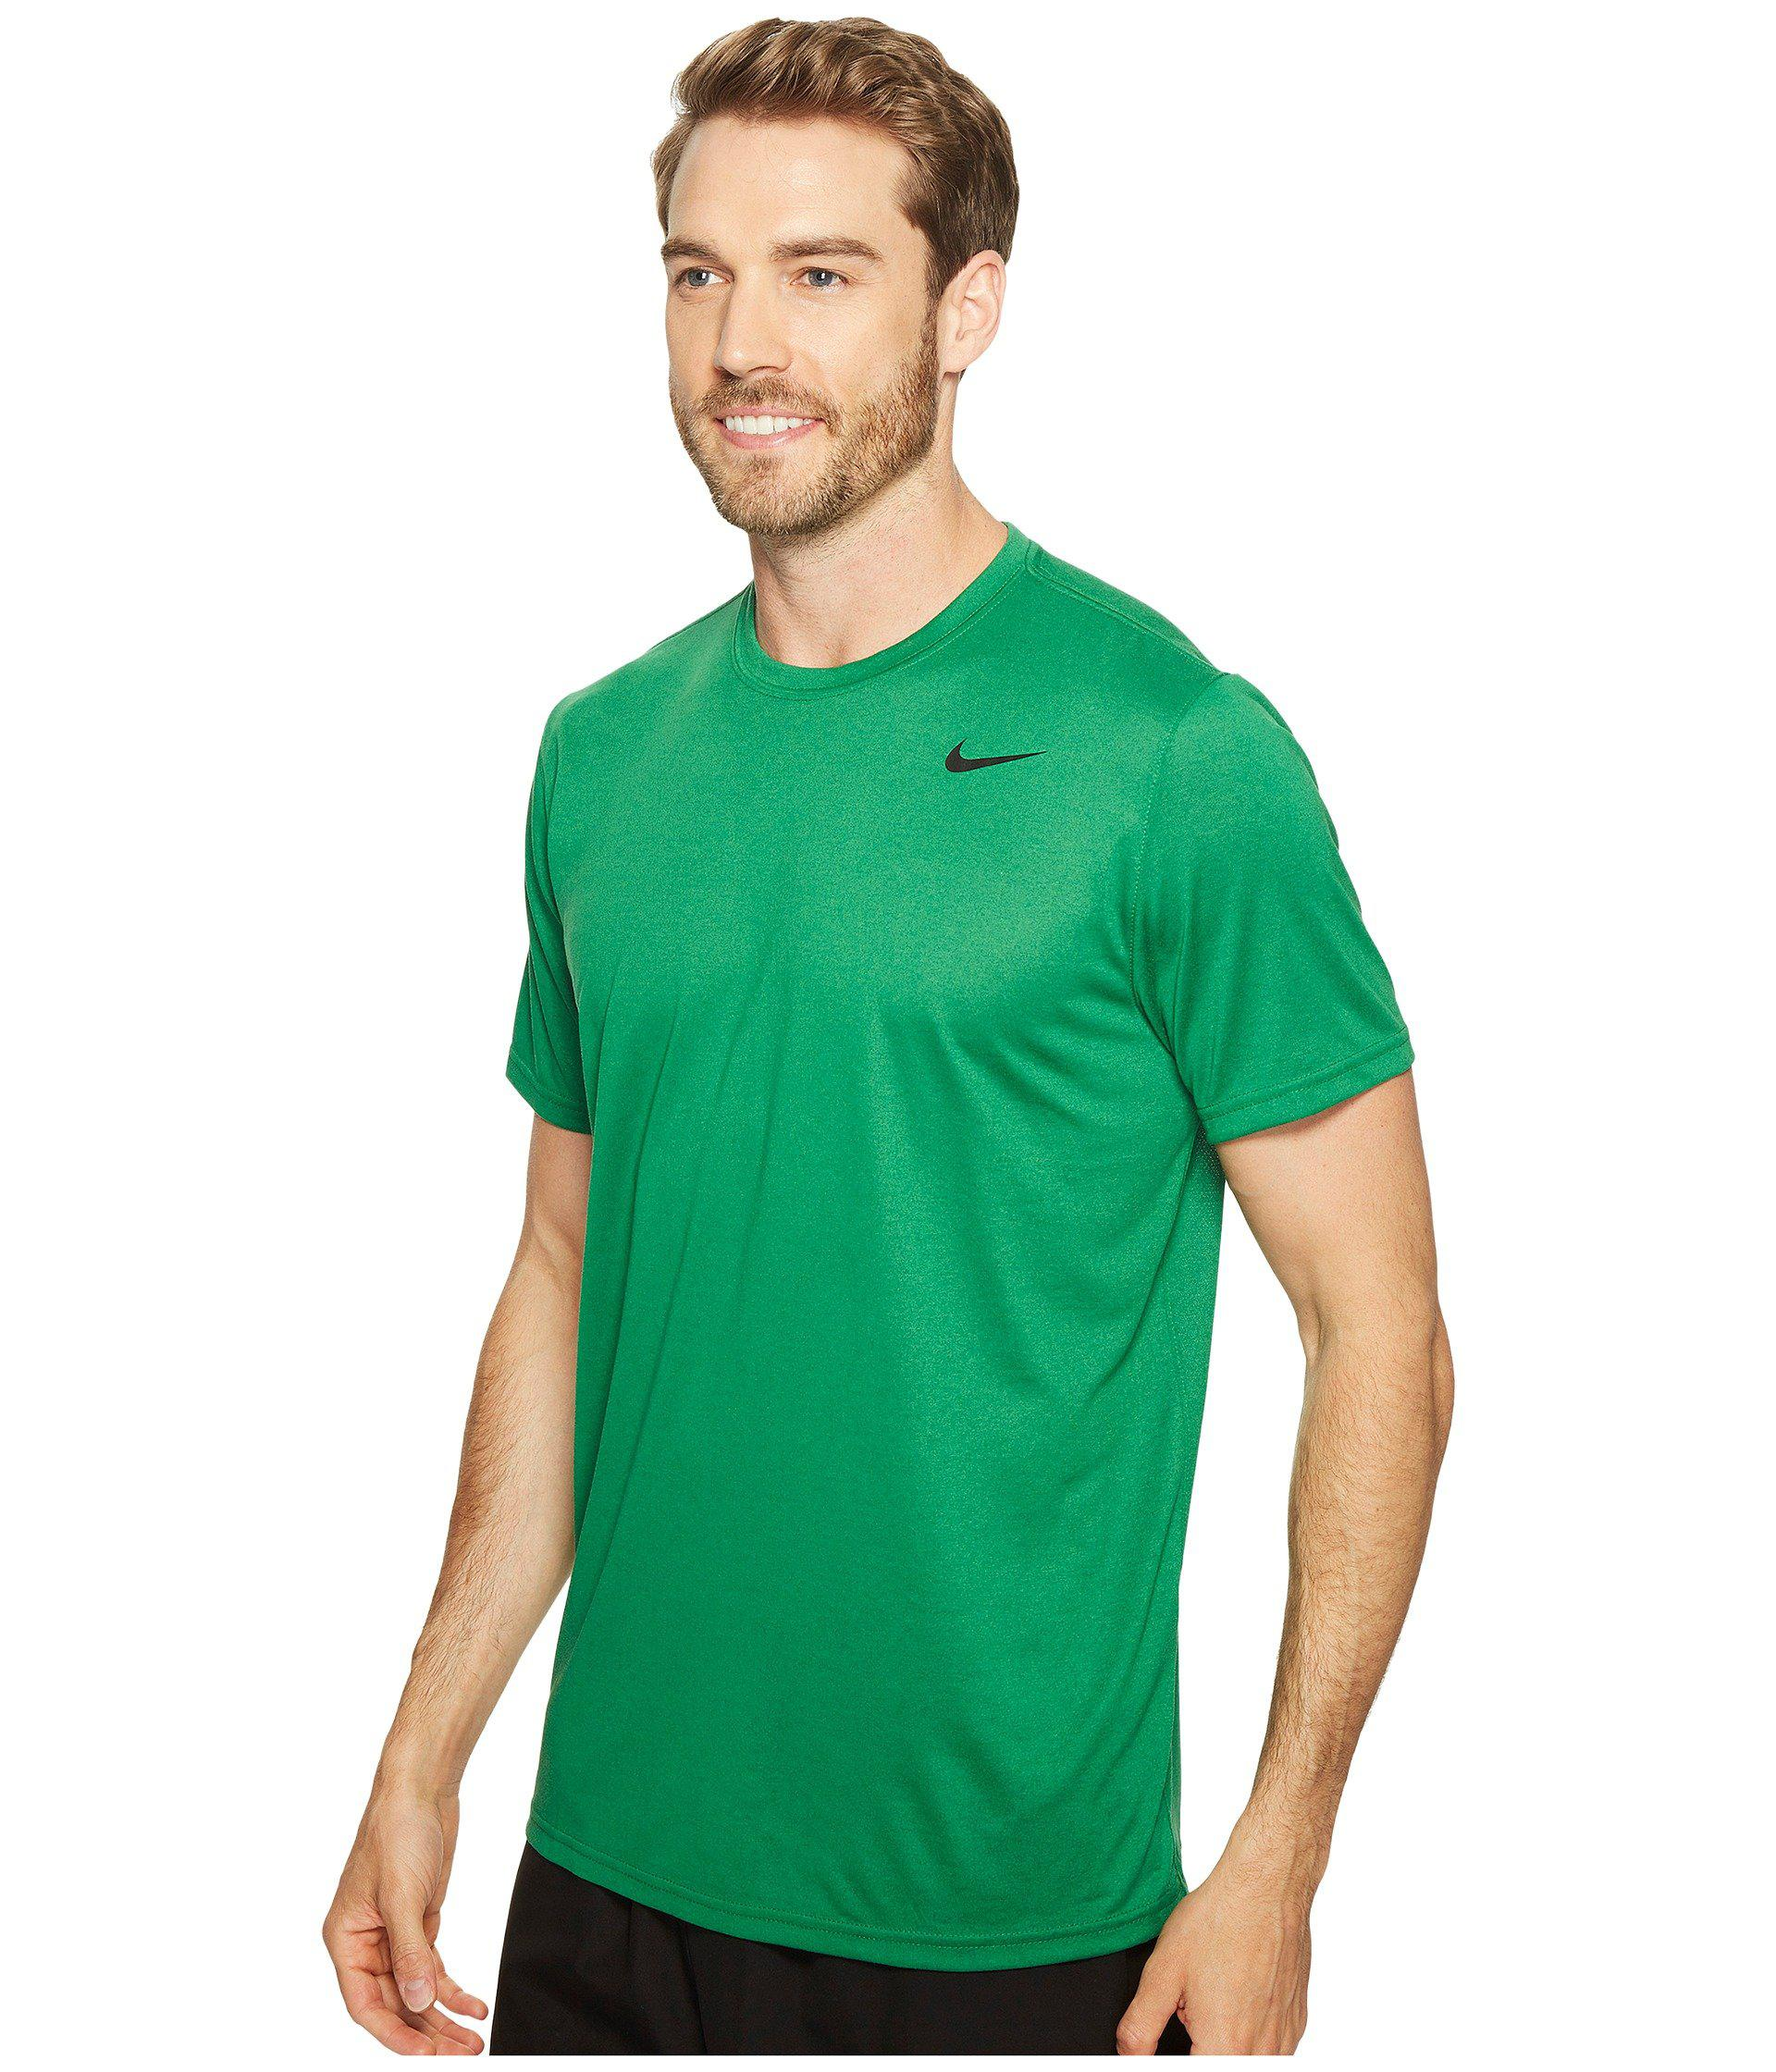 ca5ffce26cc9 Lyst - Nike Legend 2.0 Short Sleeve Tee (light Game Royal Heather black) Men s  T Shirt in Green for Men - Save 14%